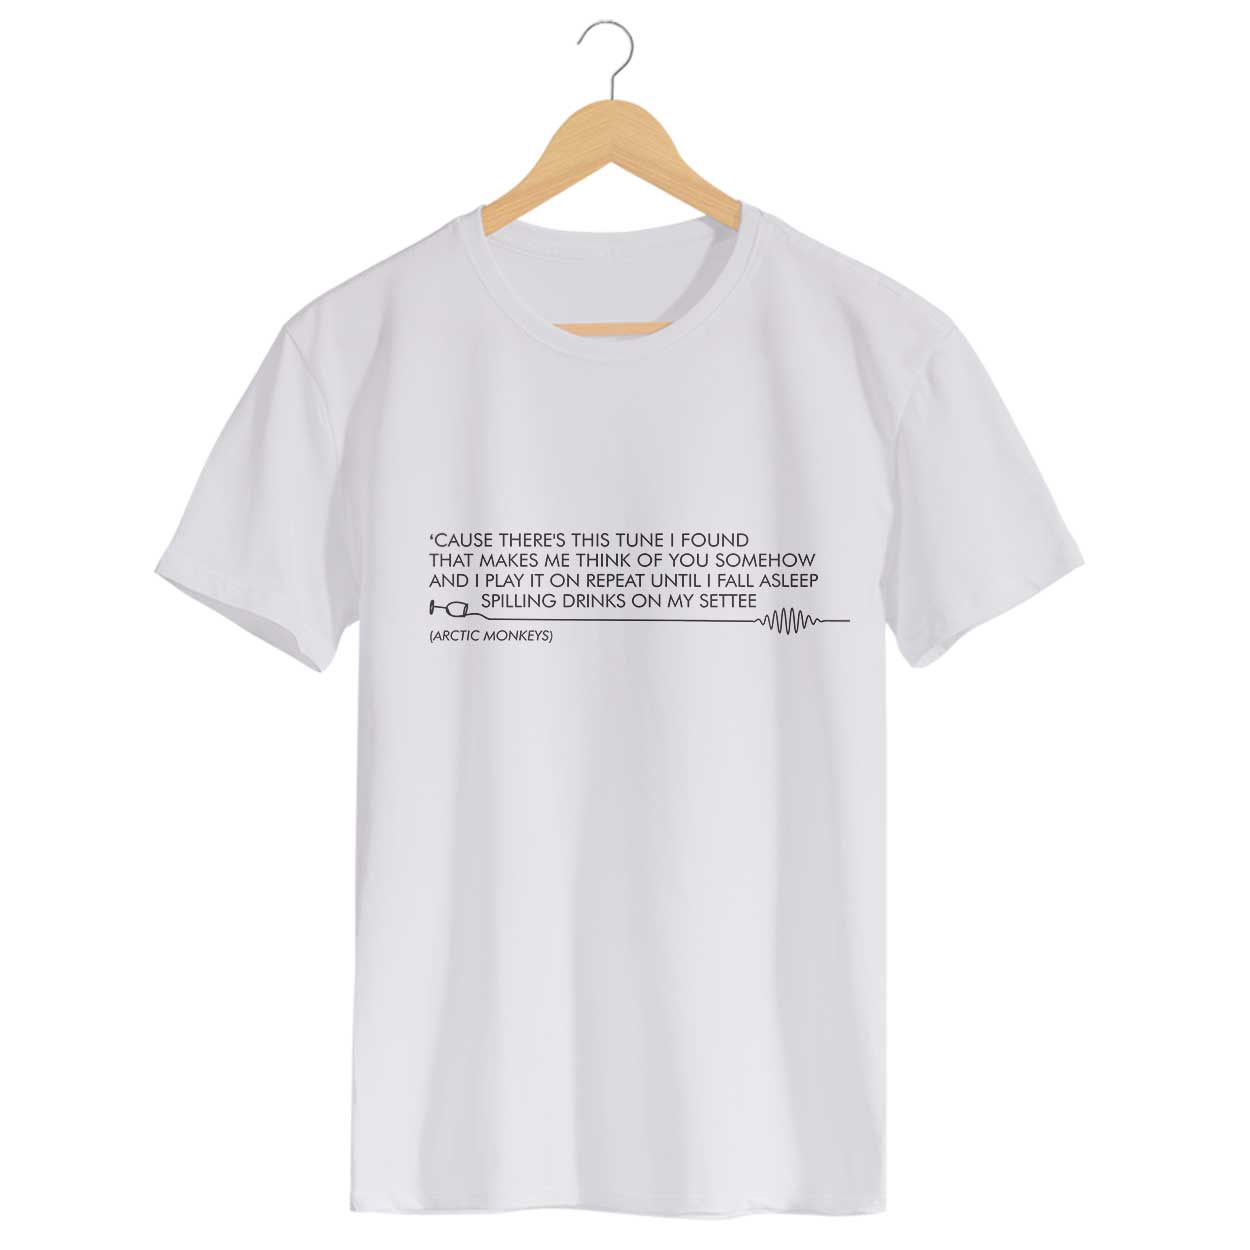 Camiseta - Do I Wanna Know? - Artic Monkeys - Masculino